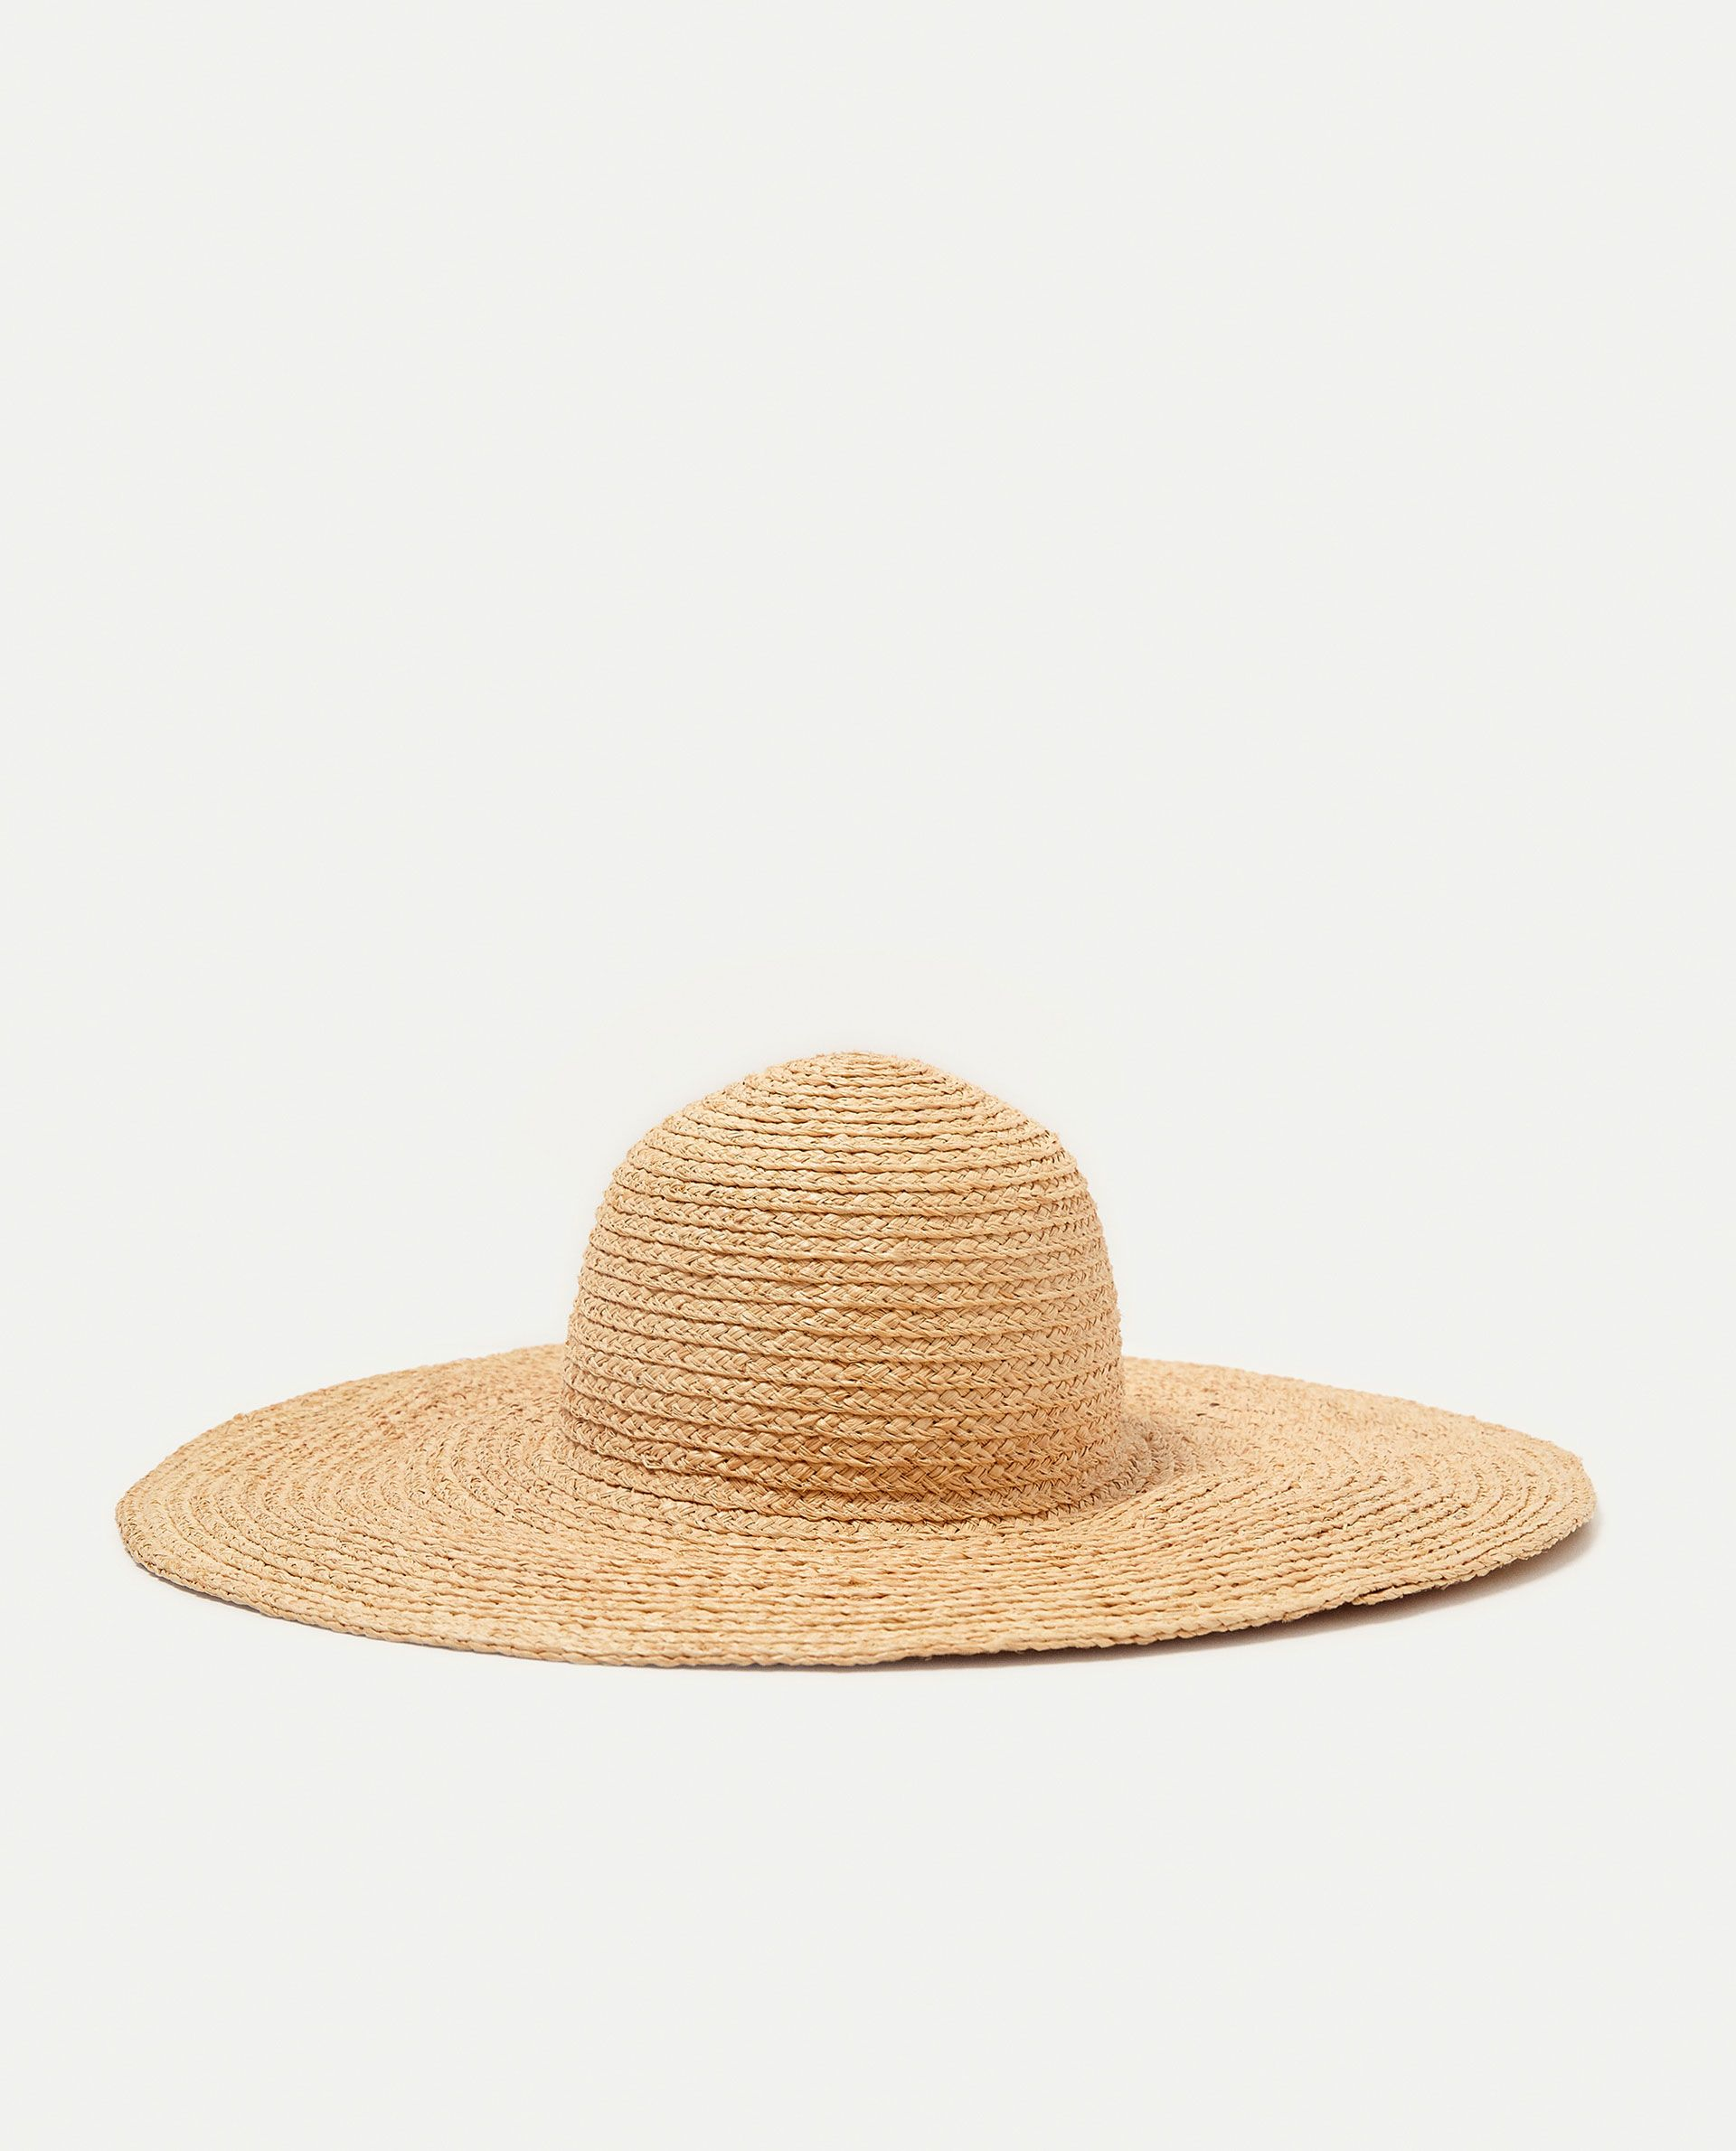 ZARA - WOMAN - FLOPPY RAFFIA HAT WITH FLORAL EMBROIDERY